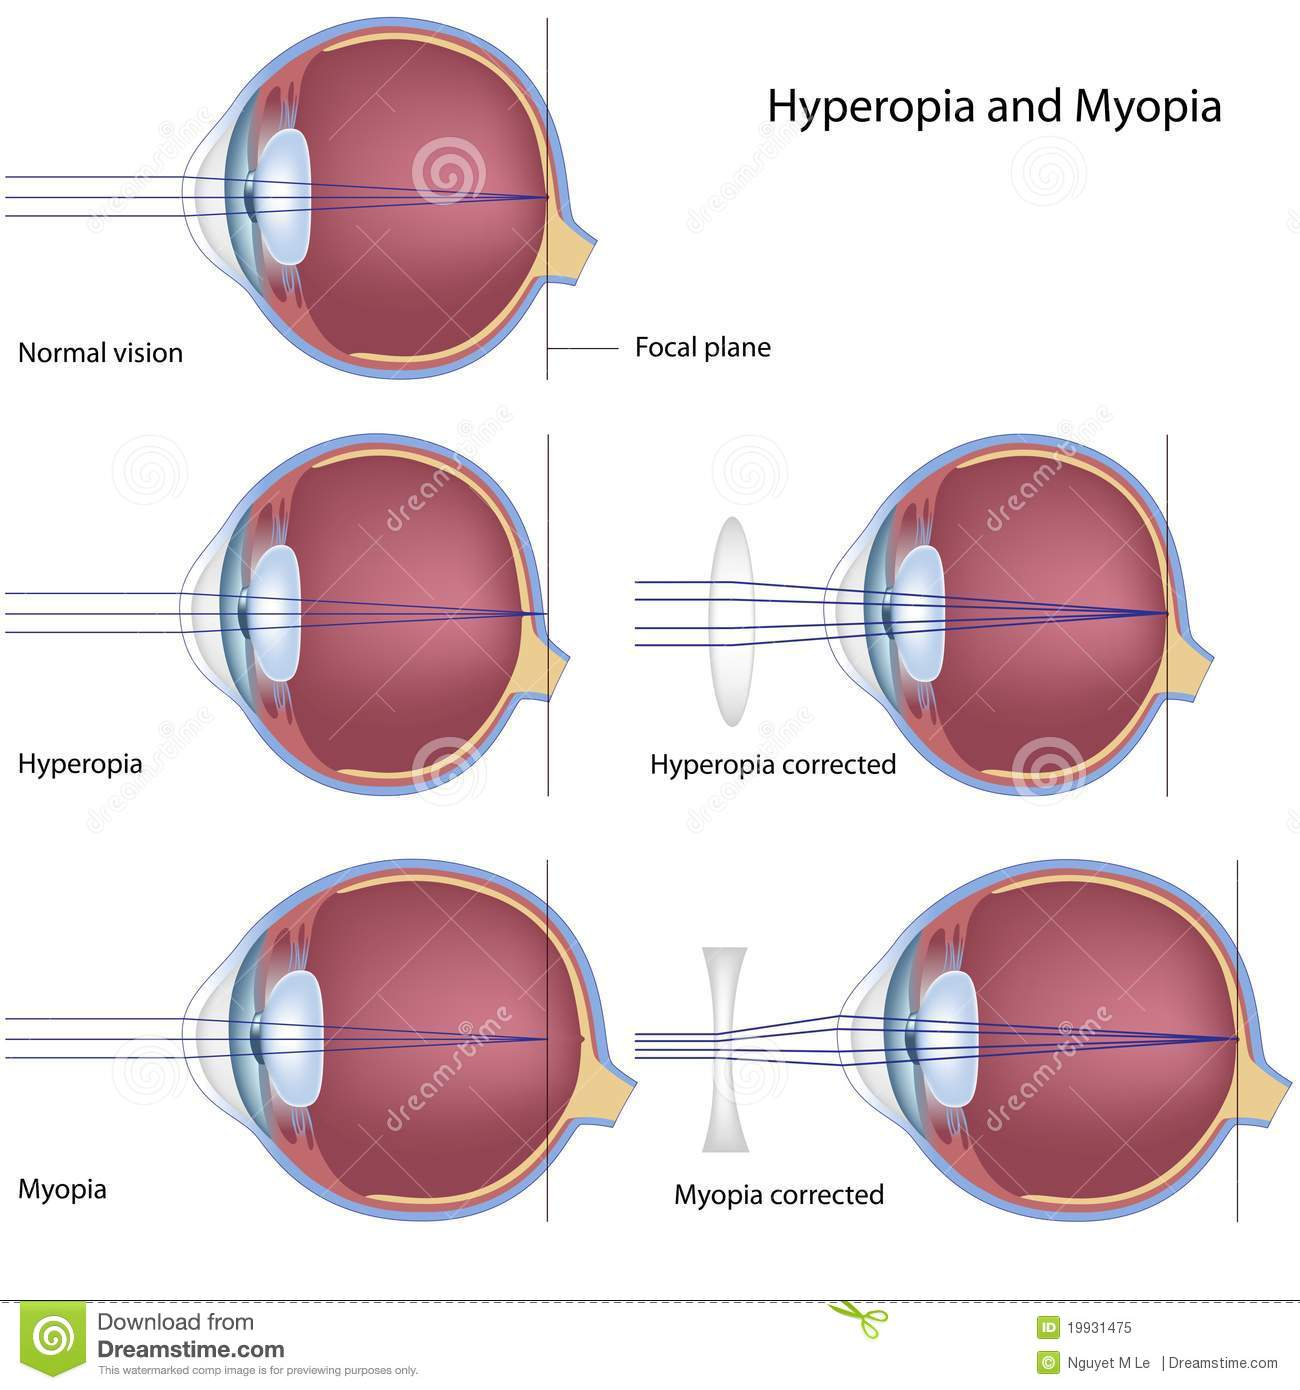 What Is Hyperopia (Farsightedness)